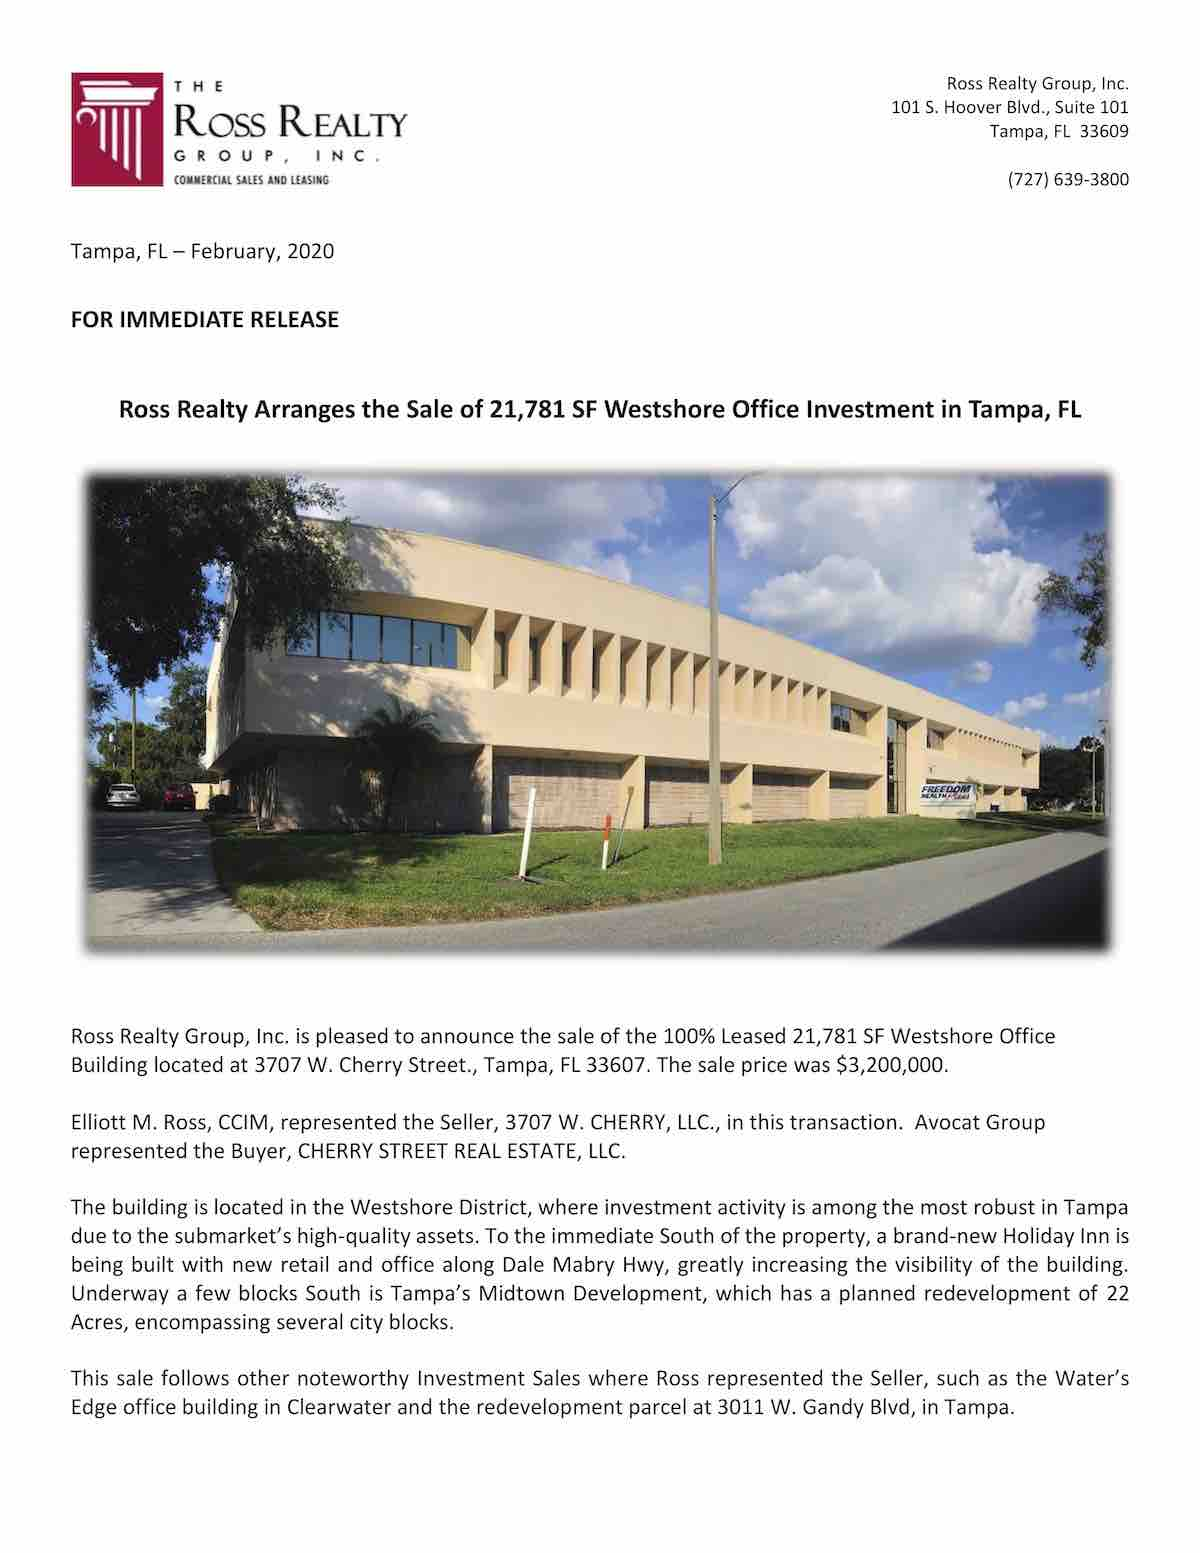 Tampa Commercial Real Estate - PR-20200214-Cherry St. Press Release P1